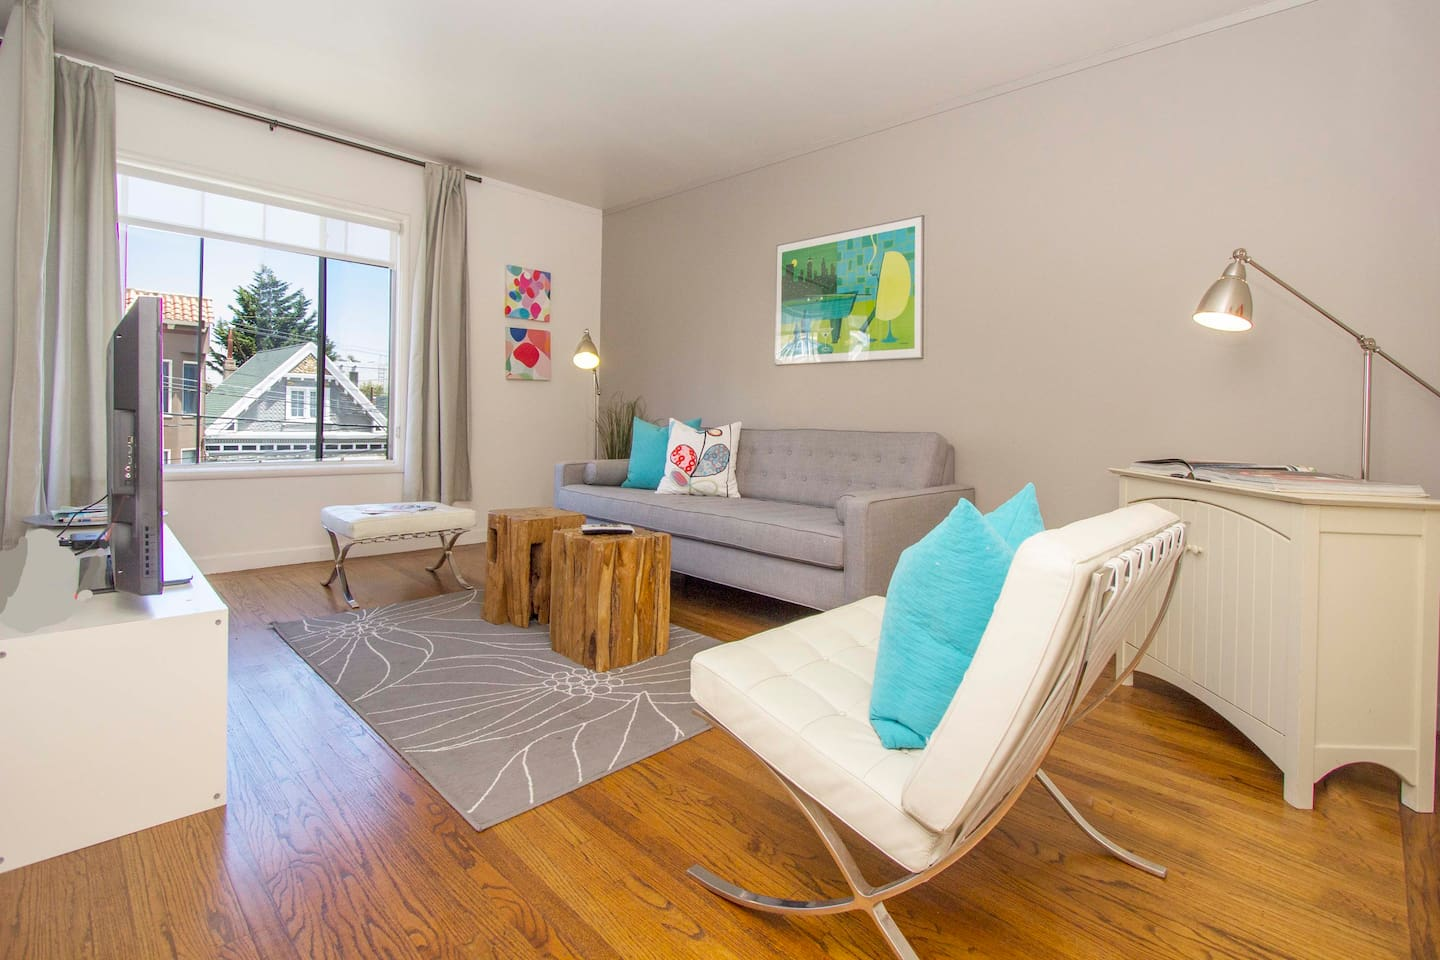 Spacious, comfortable living area with hardwood floors and tons of natural light.